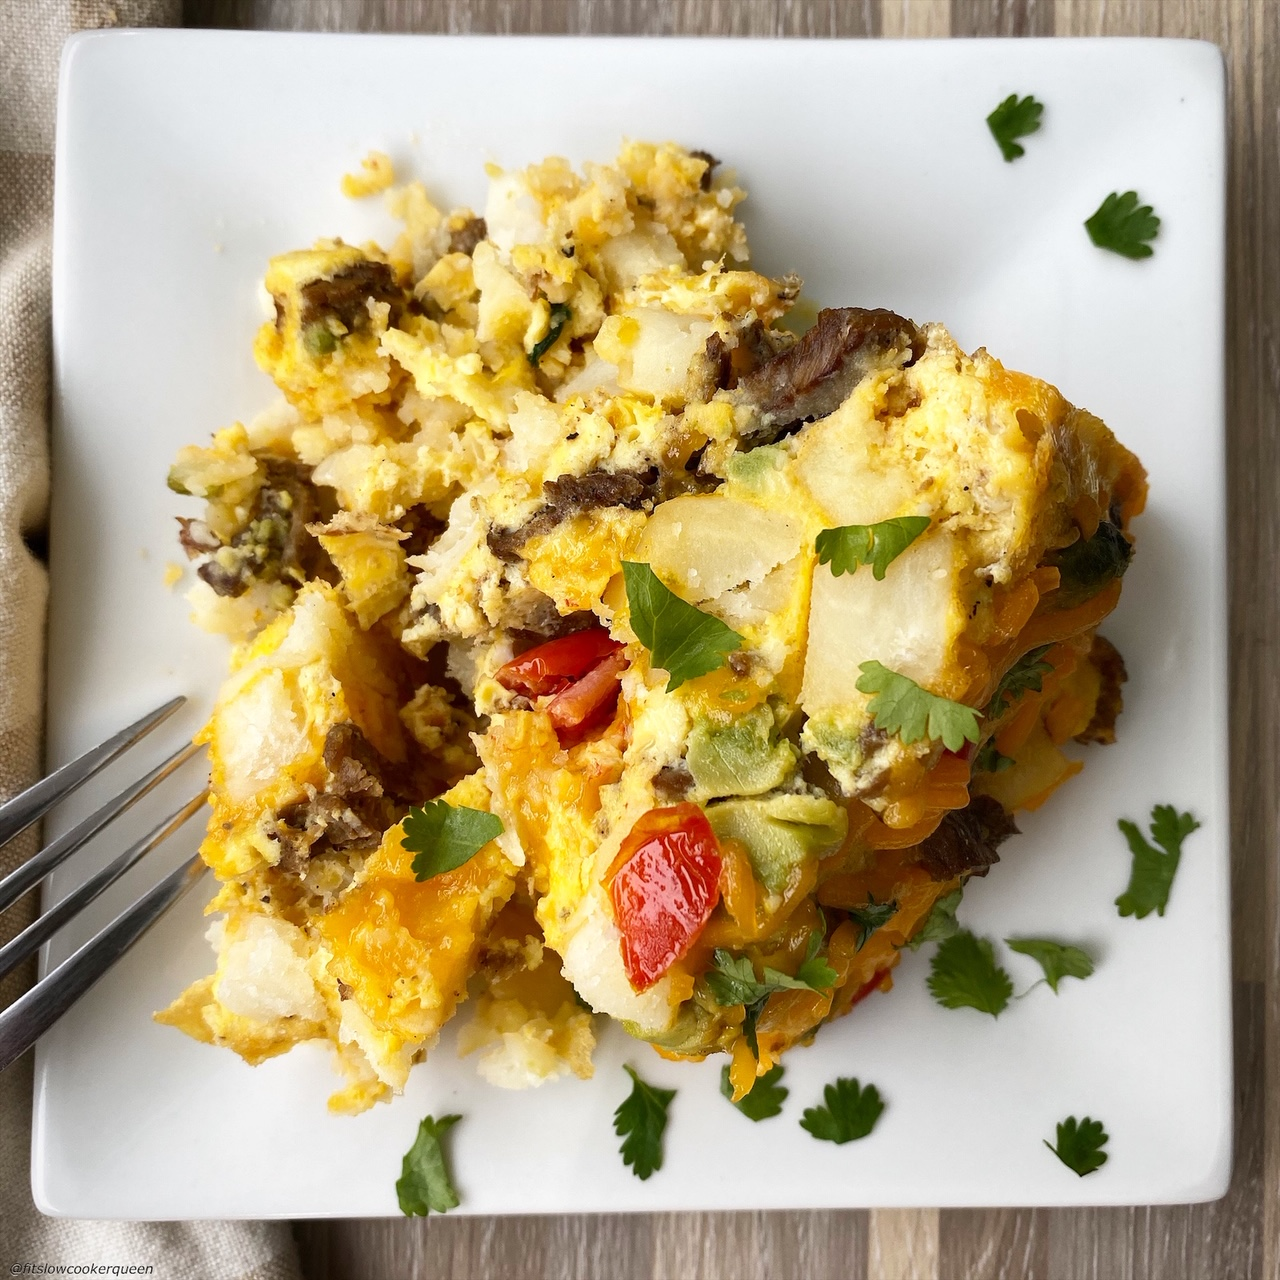 plated Slow Cooker California Burrito Breakfast Casserole